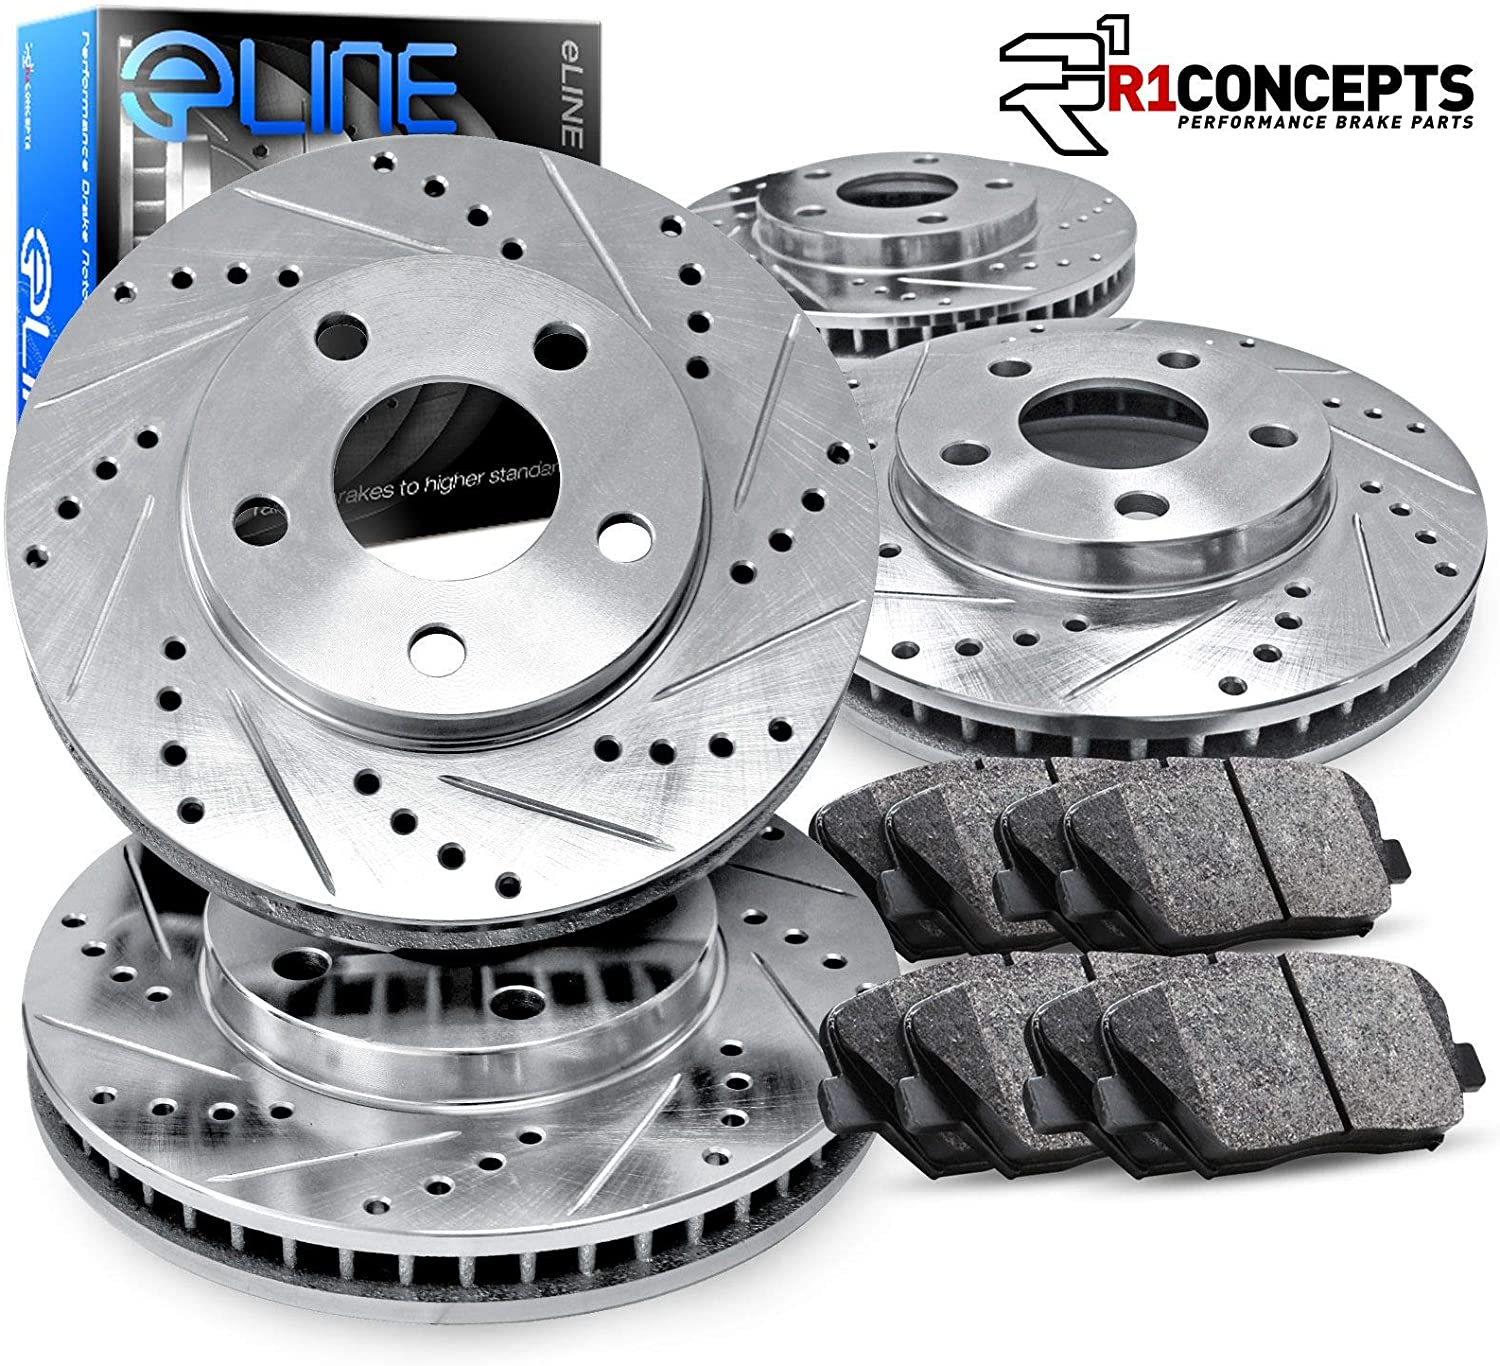 Front And Rear OE Brake Calipers /& Rotors /& Pads For Hyundai Sonata Kia Optima